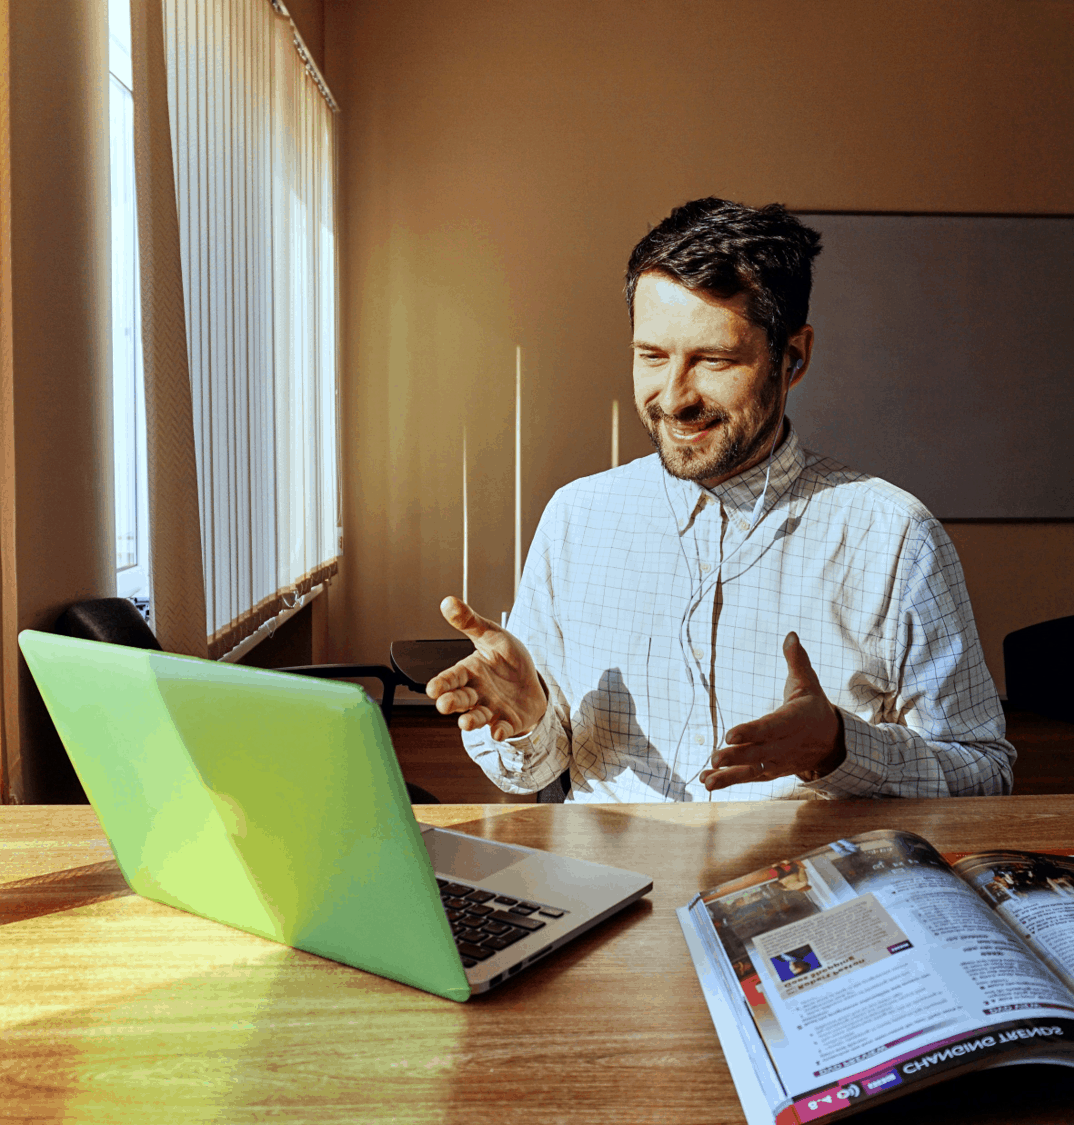 Man working from home who has digitized his business